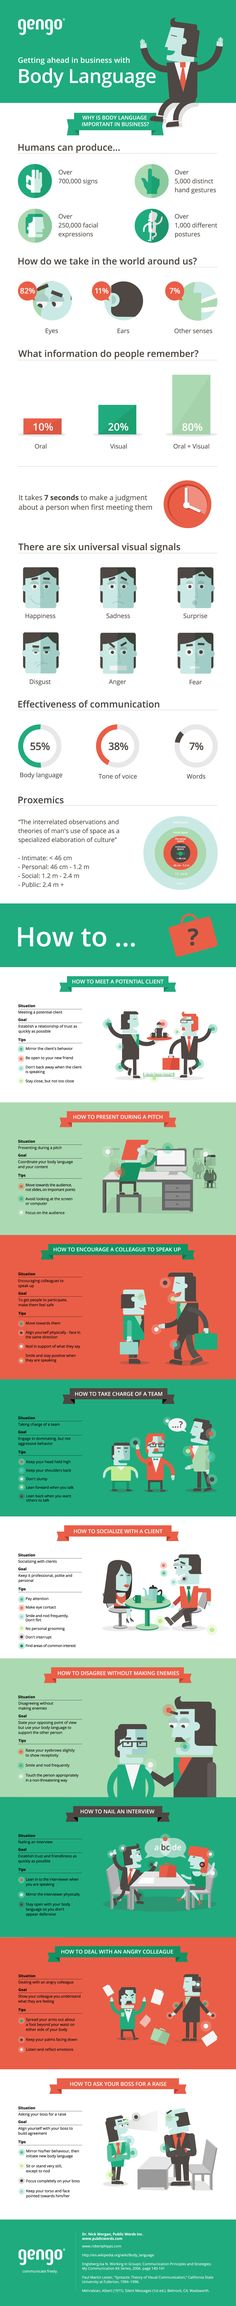 Is body language important in business? Of course it is!   How can it help you get ahead? This infographic by Gengo tells you how it can help.